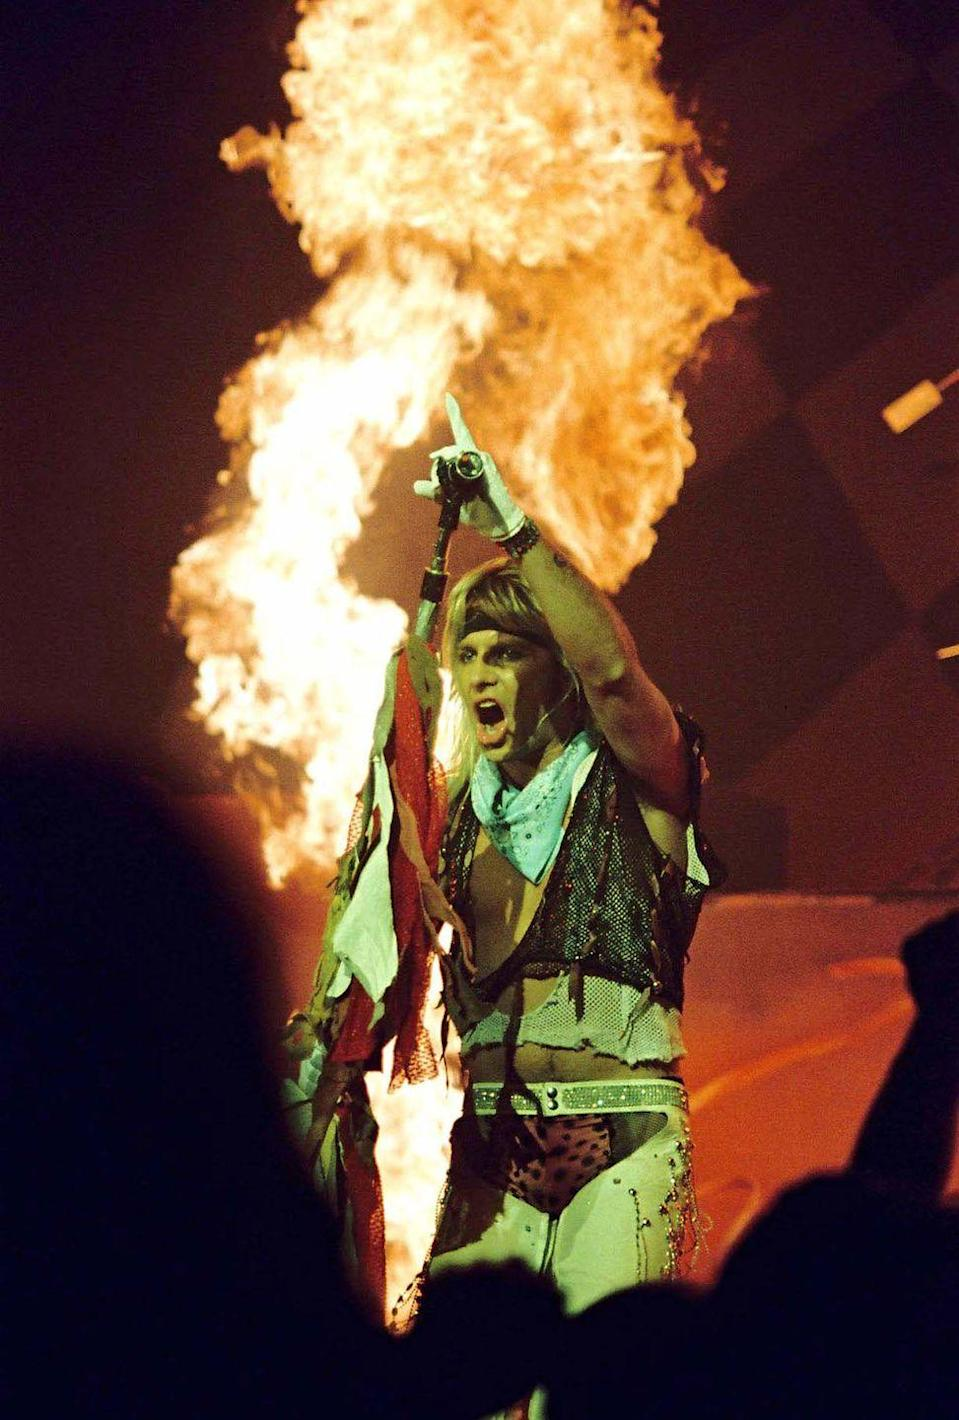 <p>Neil performing with a plume of fire behind him (a popular stage component for them) at the Hammersmith Odeon in London in 1986. </p>